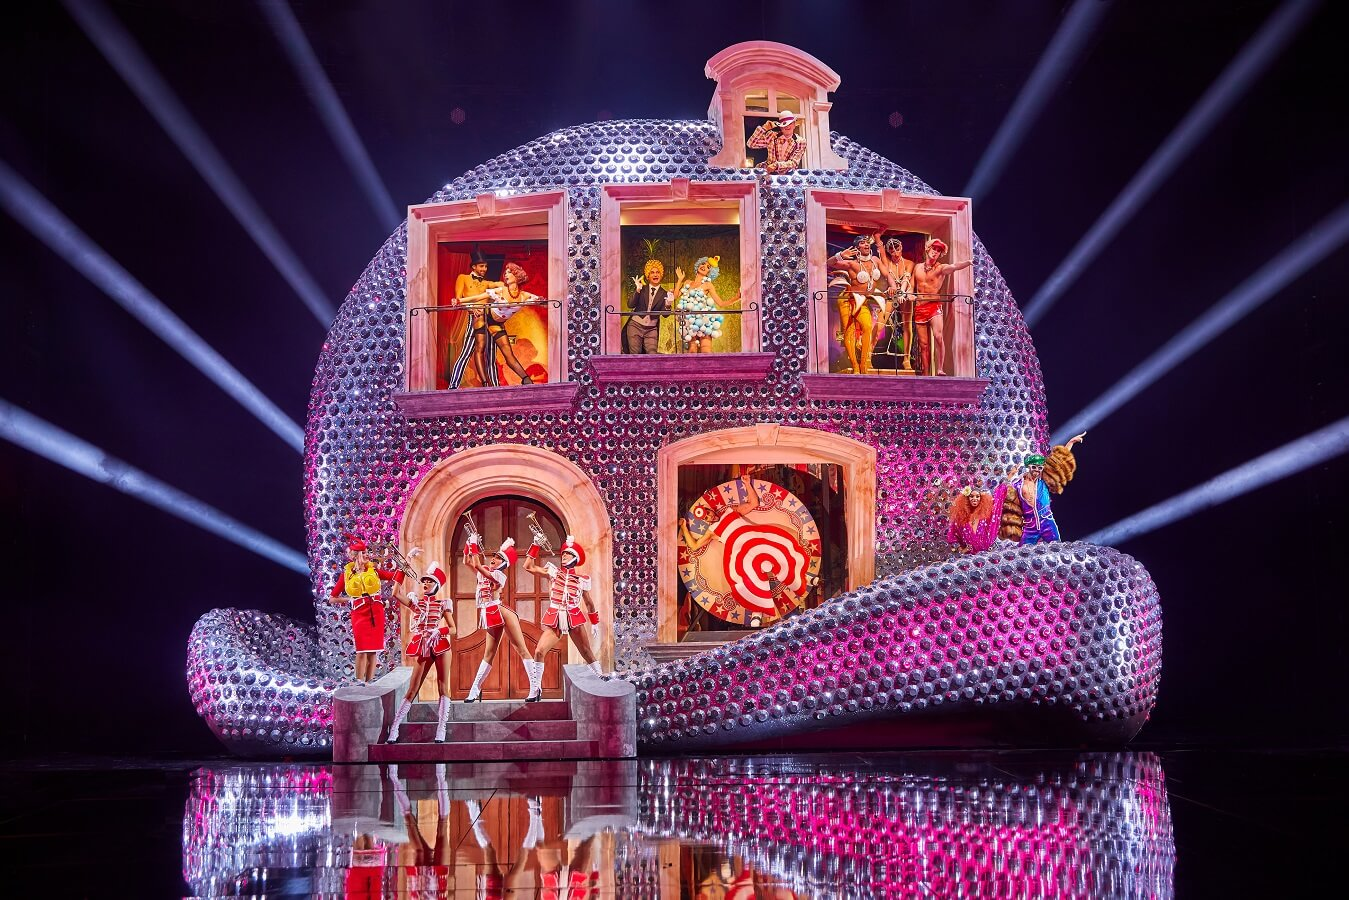 VIVID Grand Show | Palast Berlin | Fun House | Philip Treacy